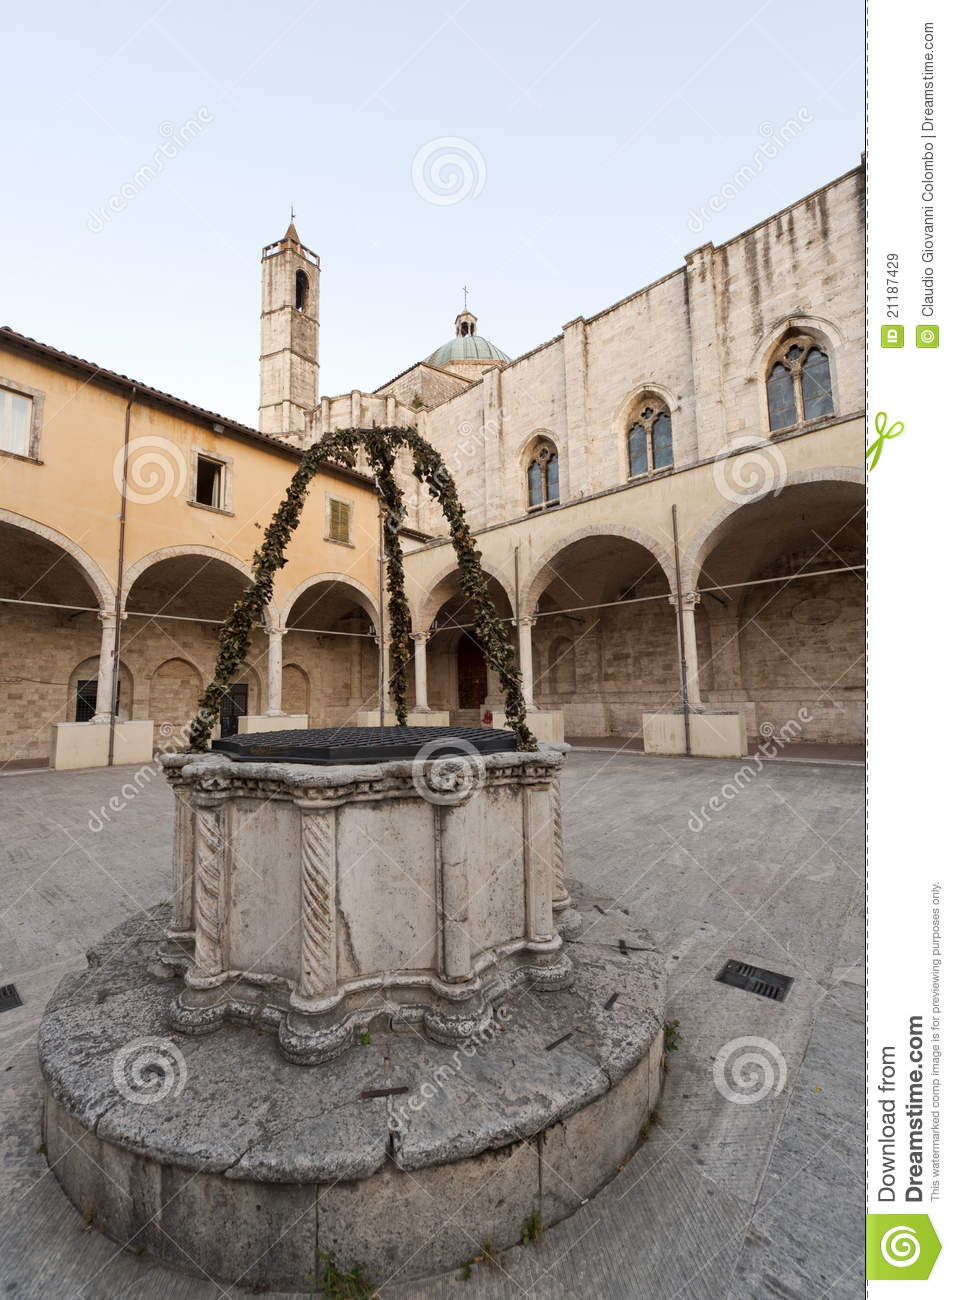 Ascoli Piceno (Marches, Italy):Cloister with well